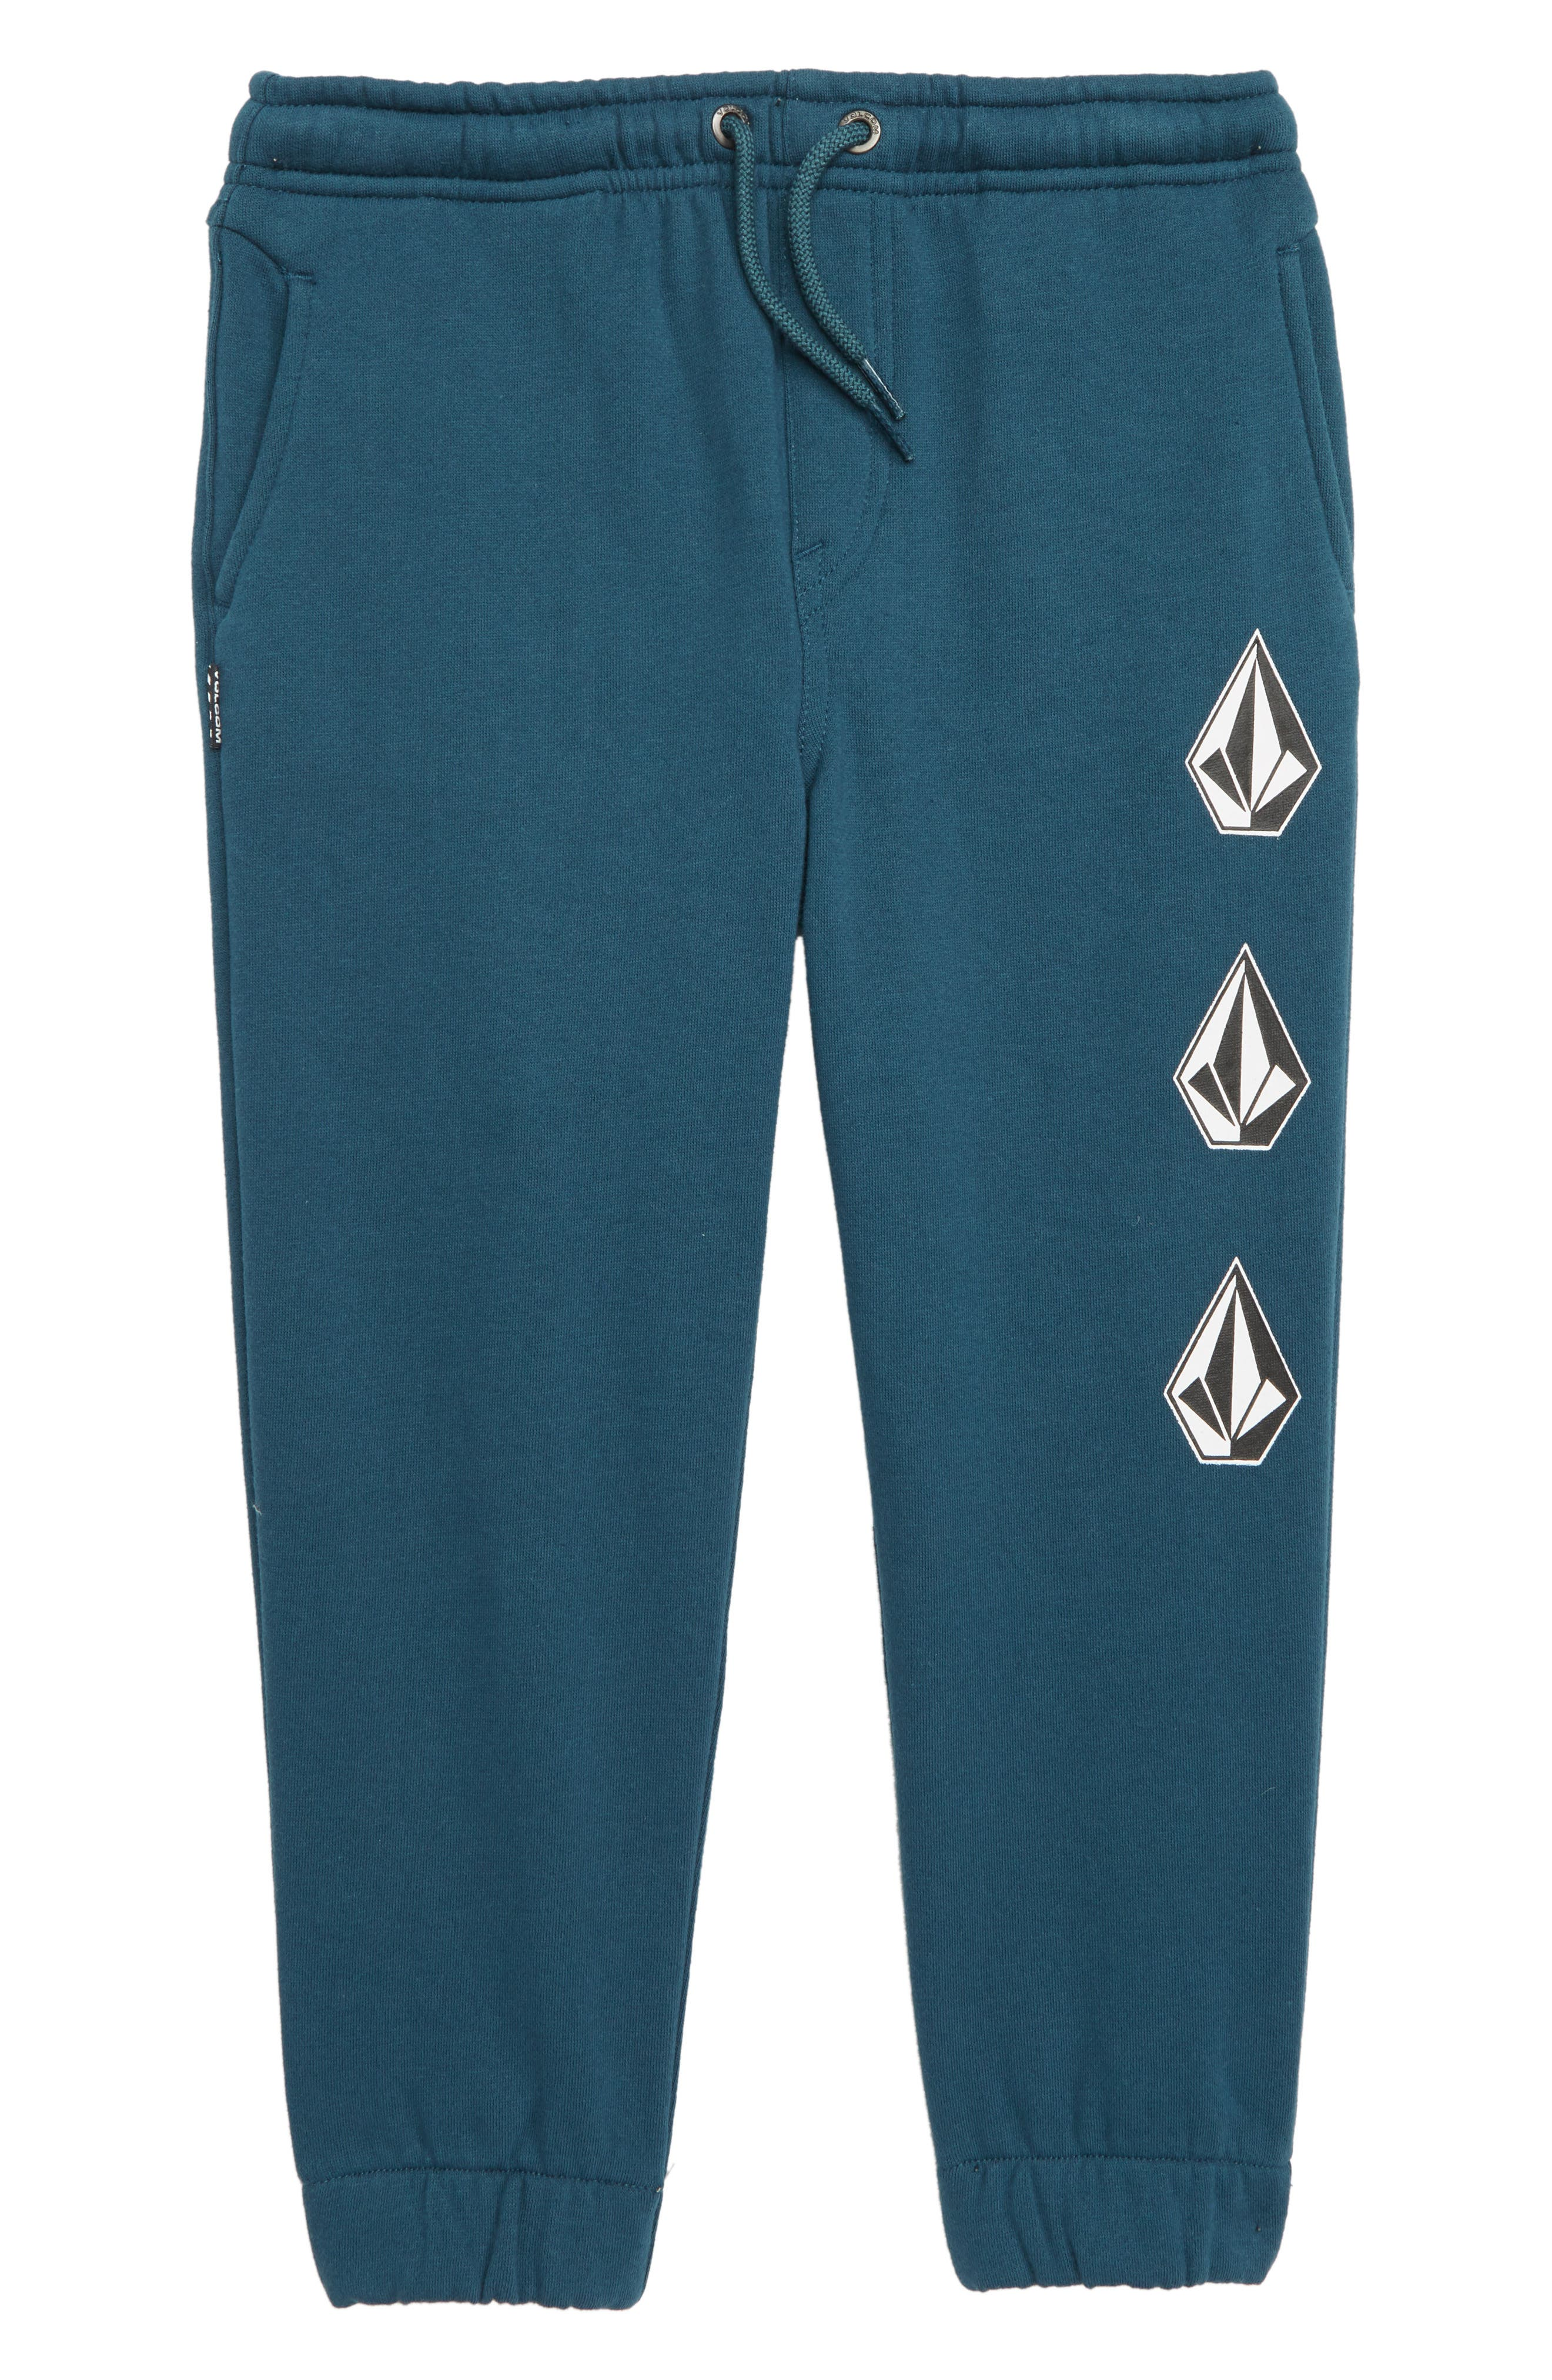 Deadly Stones Sweatpants,                         Main,                         color, NAVY GREEN